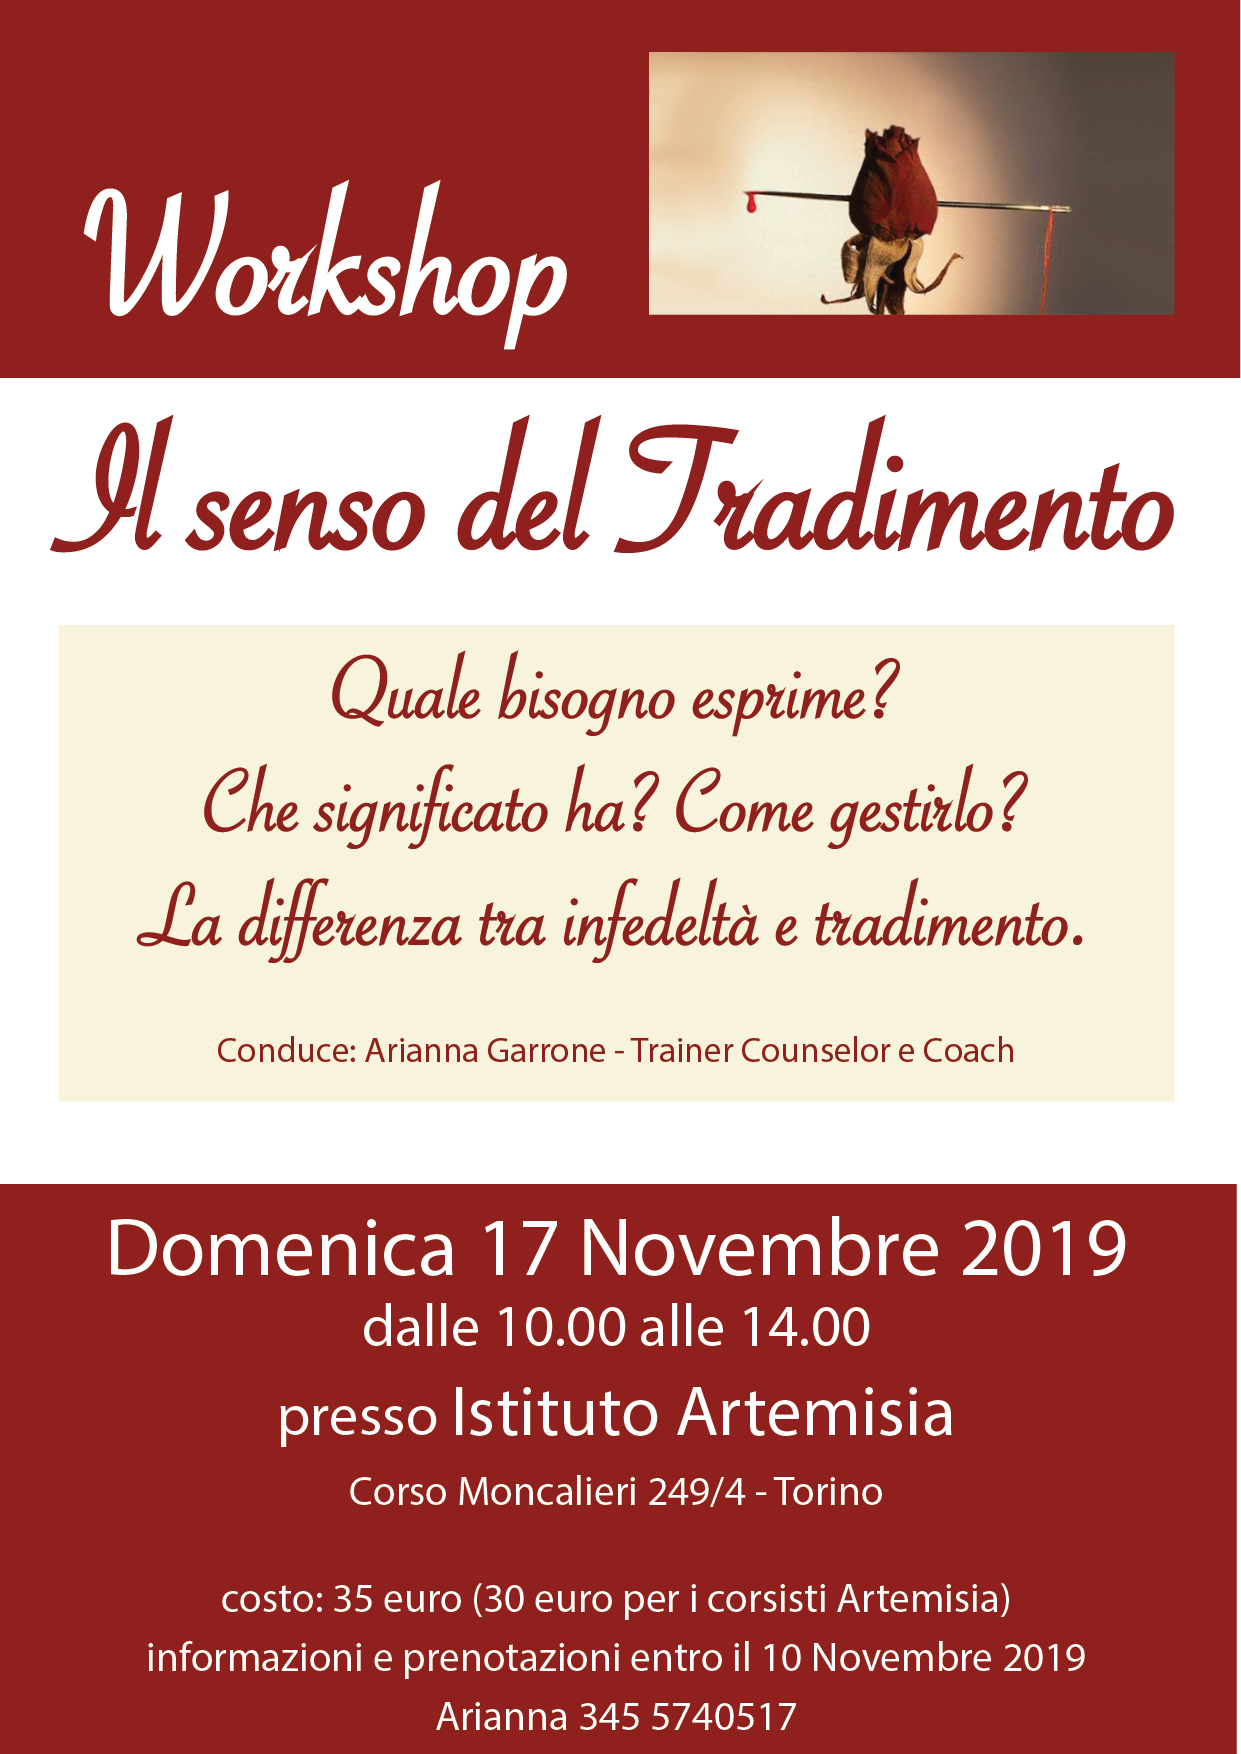 Workshop - Il senso del tradimento